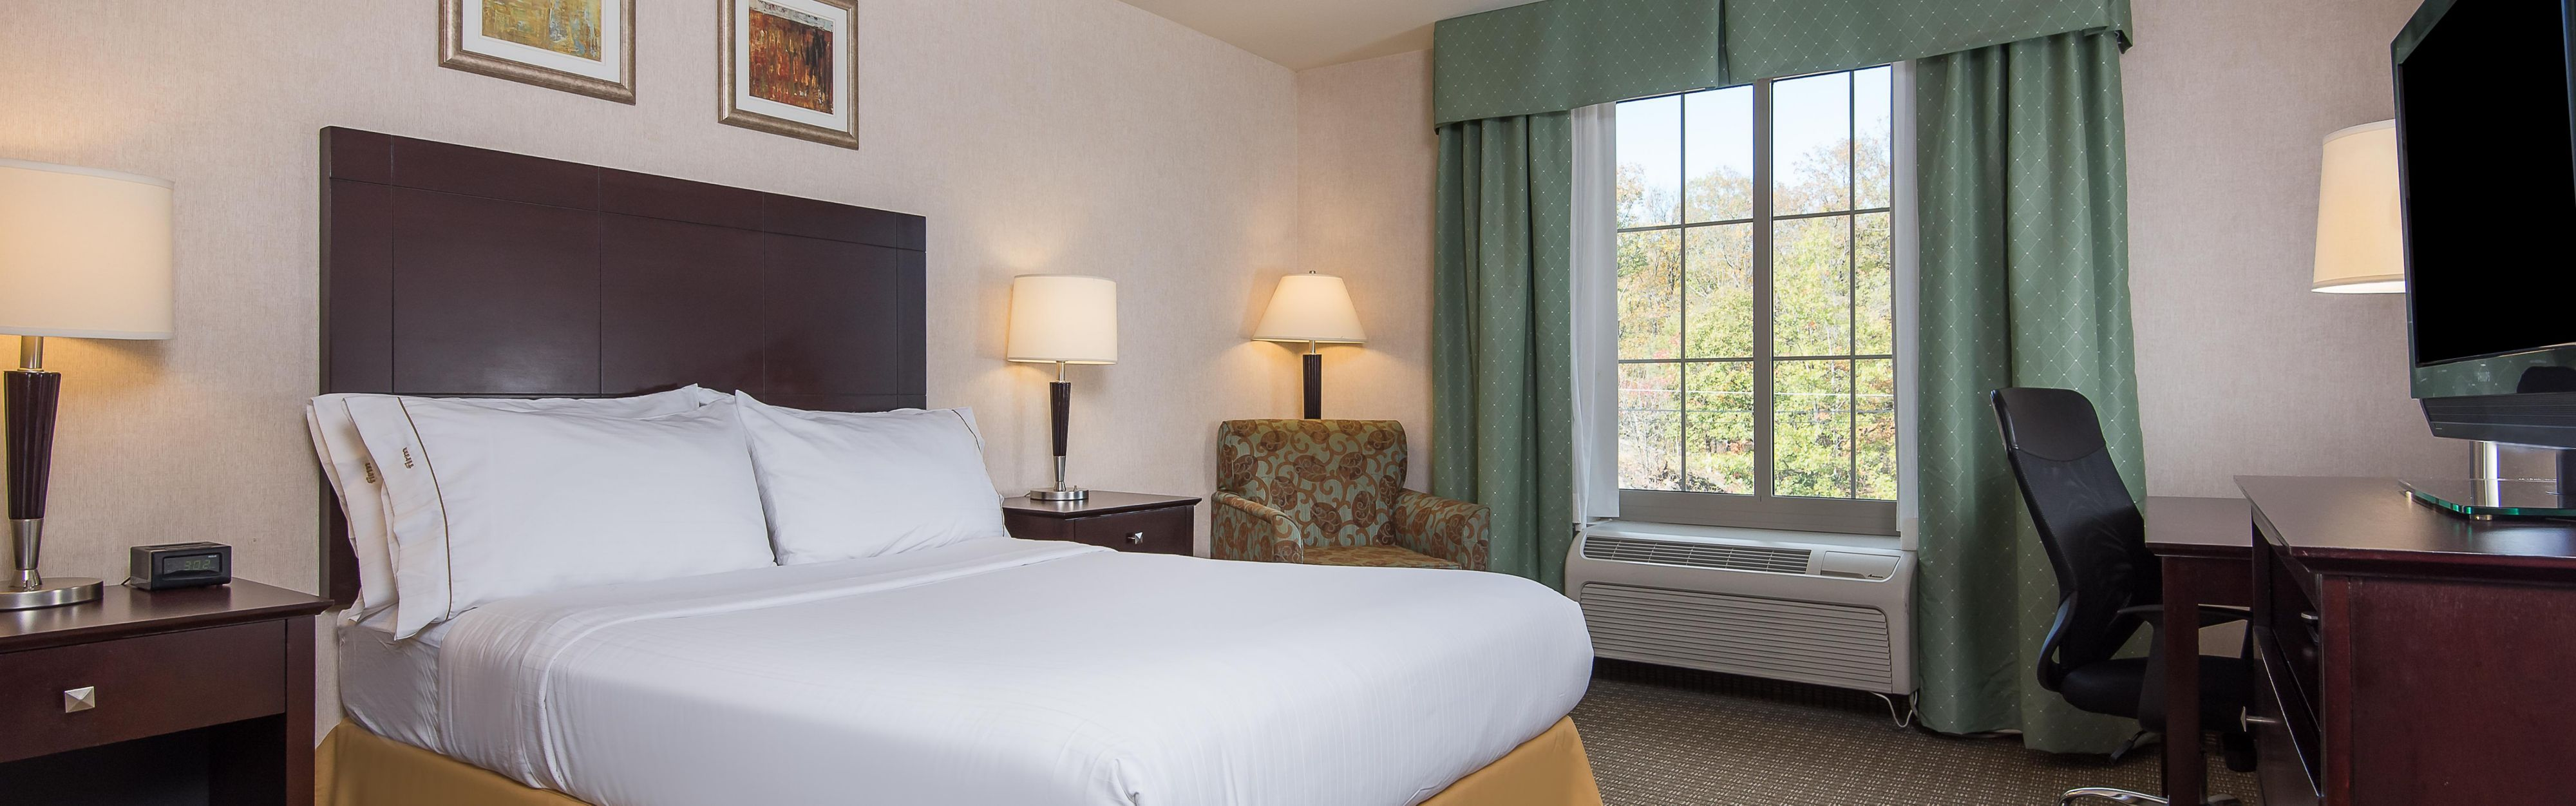 Holiday Inn Express Haskell-Wayne Area image 1